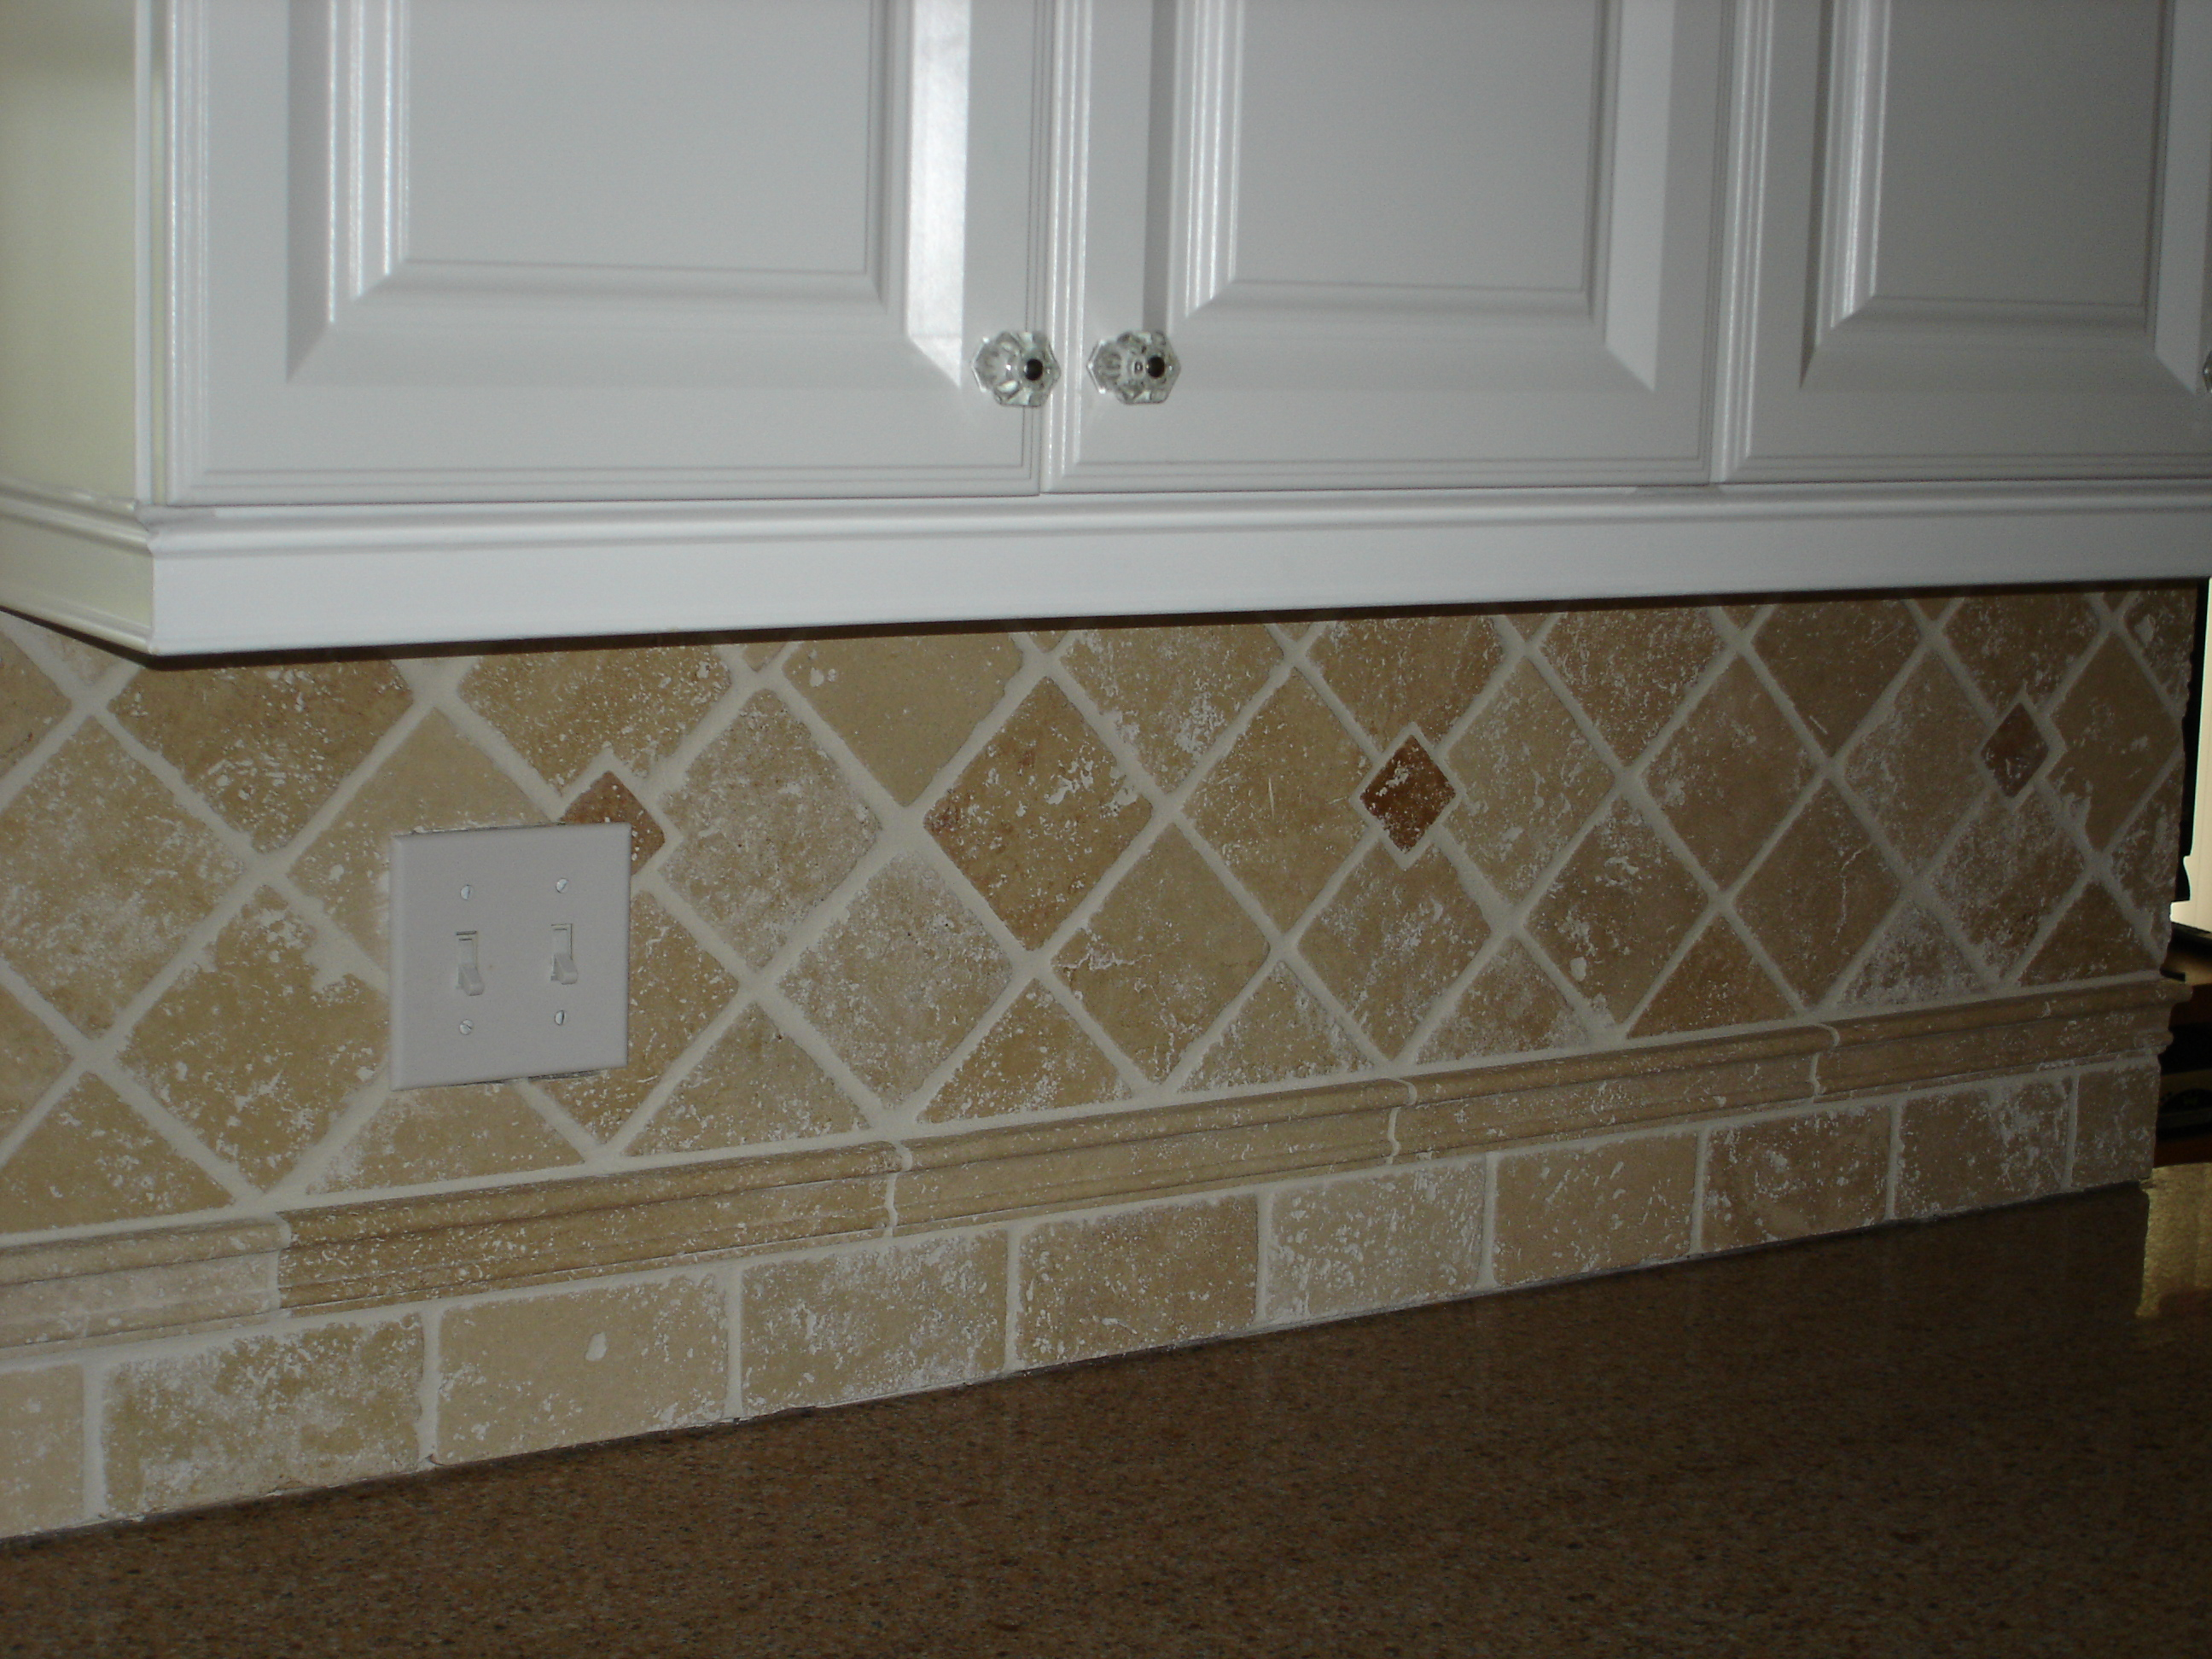 Tile backsplashe central nj jackson freehold colts neck brick toms river Design kitchen backsplash glass tiles